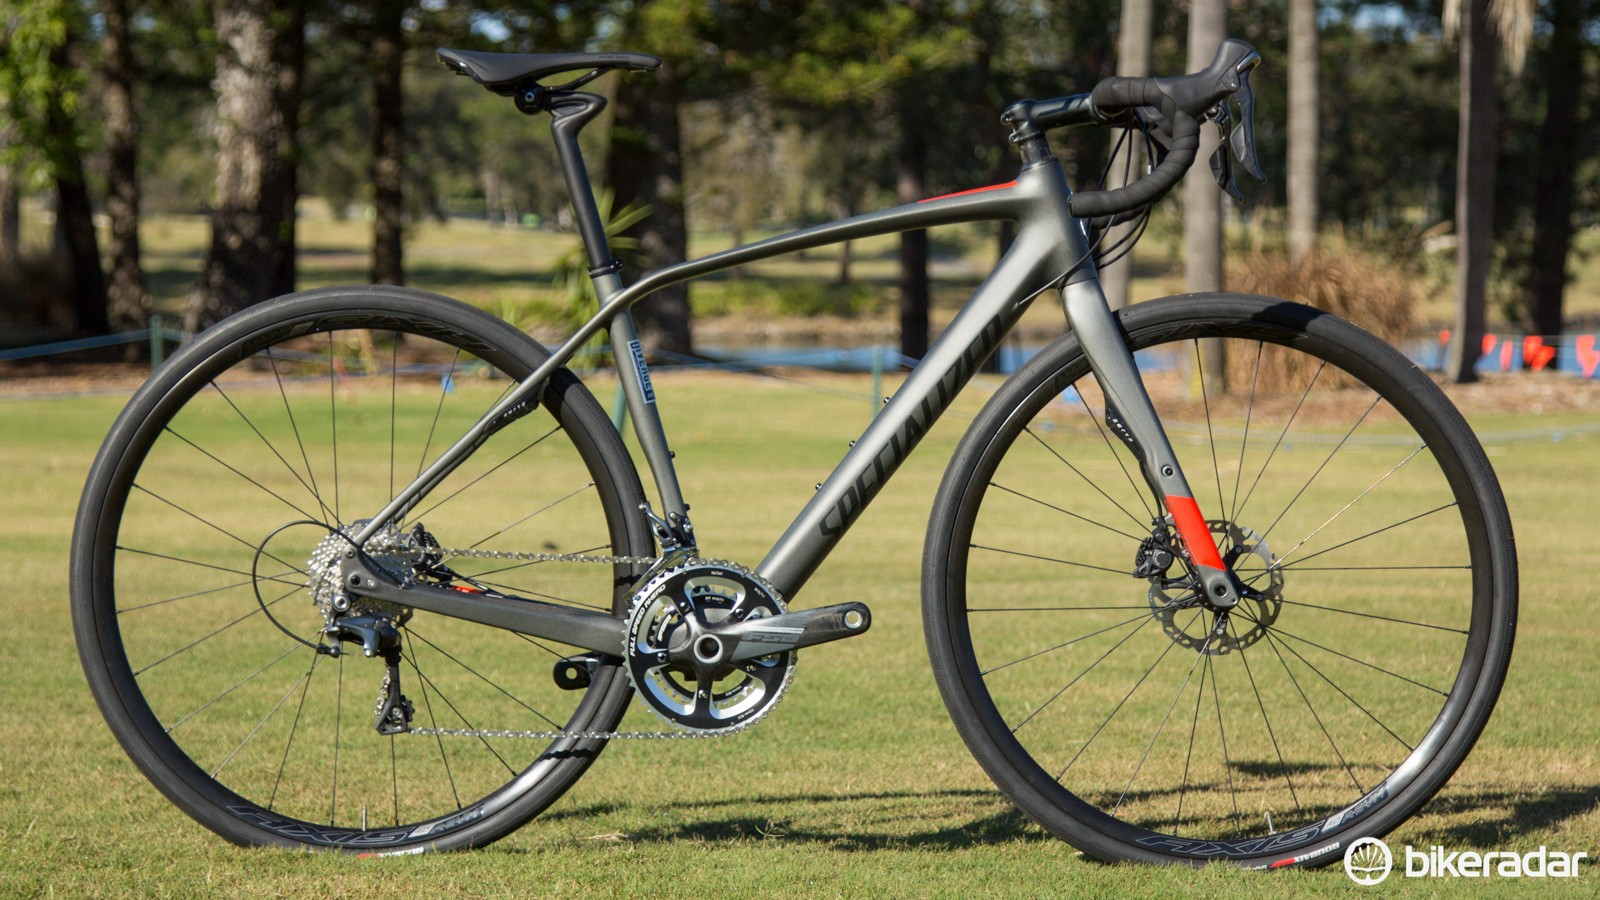 Specialized Diverge comes equipped with super-compact cranksets for 2017